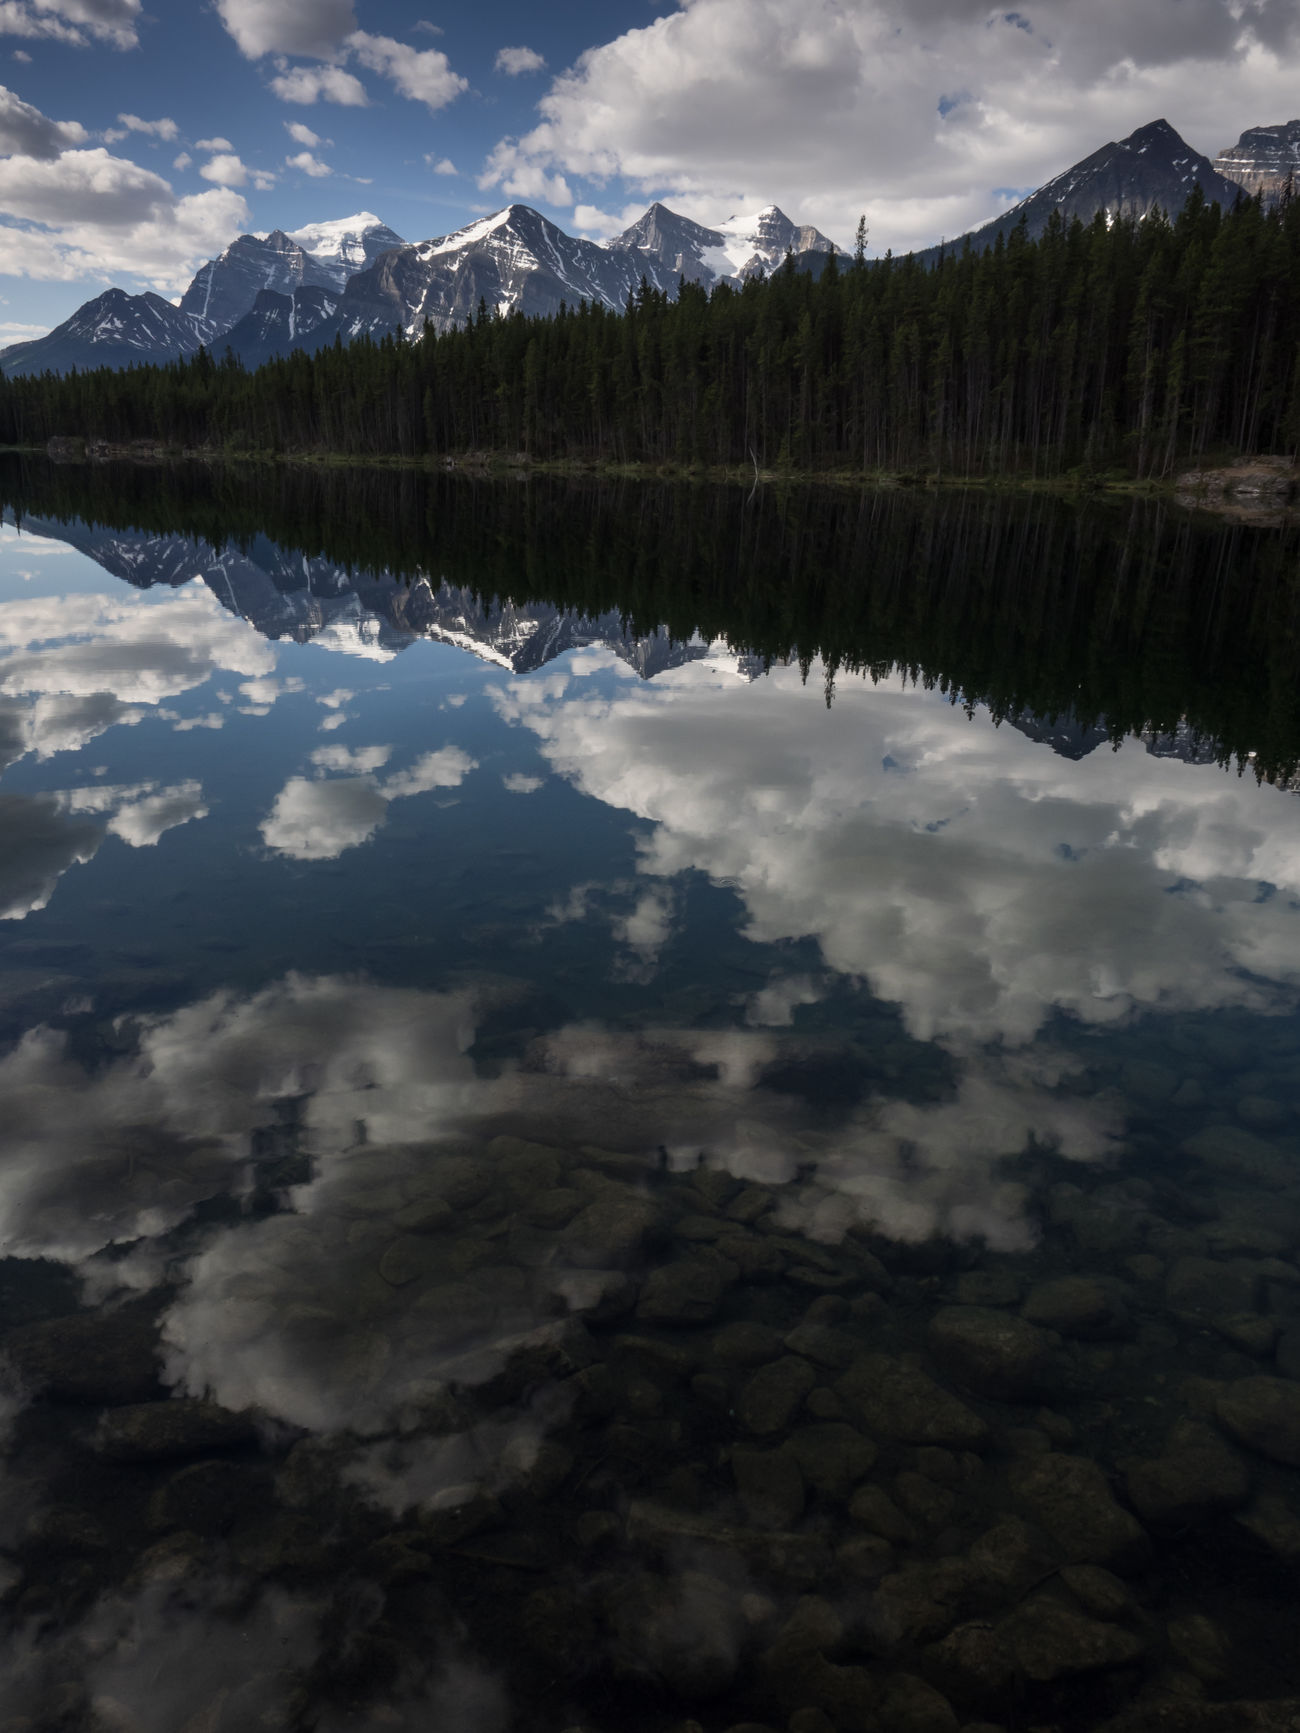 Alberta Beauty In Nature Canada Cloud - Sky Day Forest Lake Landscape Lanscape Mirror Lake Mountain National Park Nature Nature Nature Photography Nature_collection No People Outdoors Reflection Scenics Tranquil Scene Tranquility Tree Water Wilderness